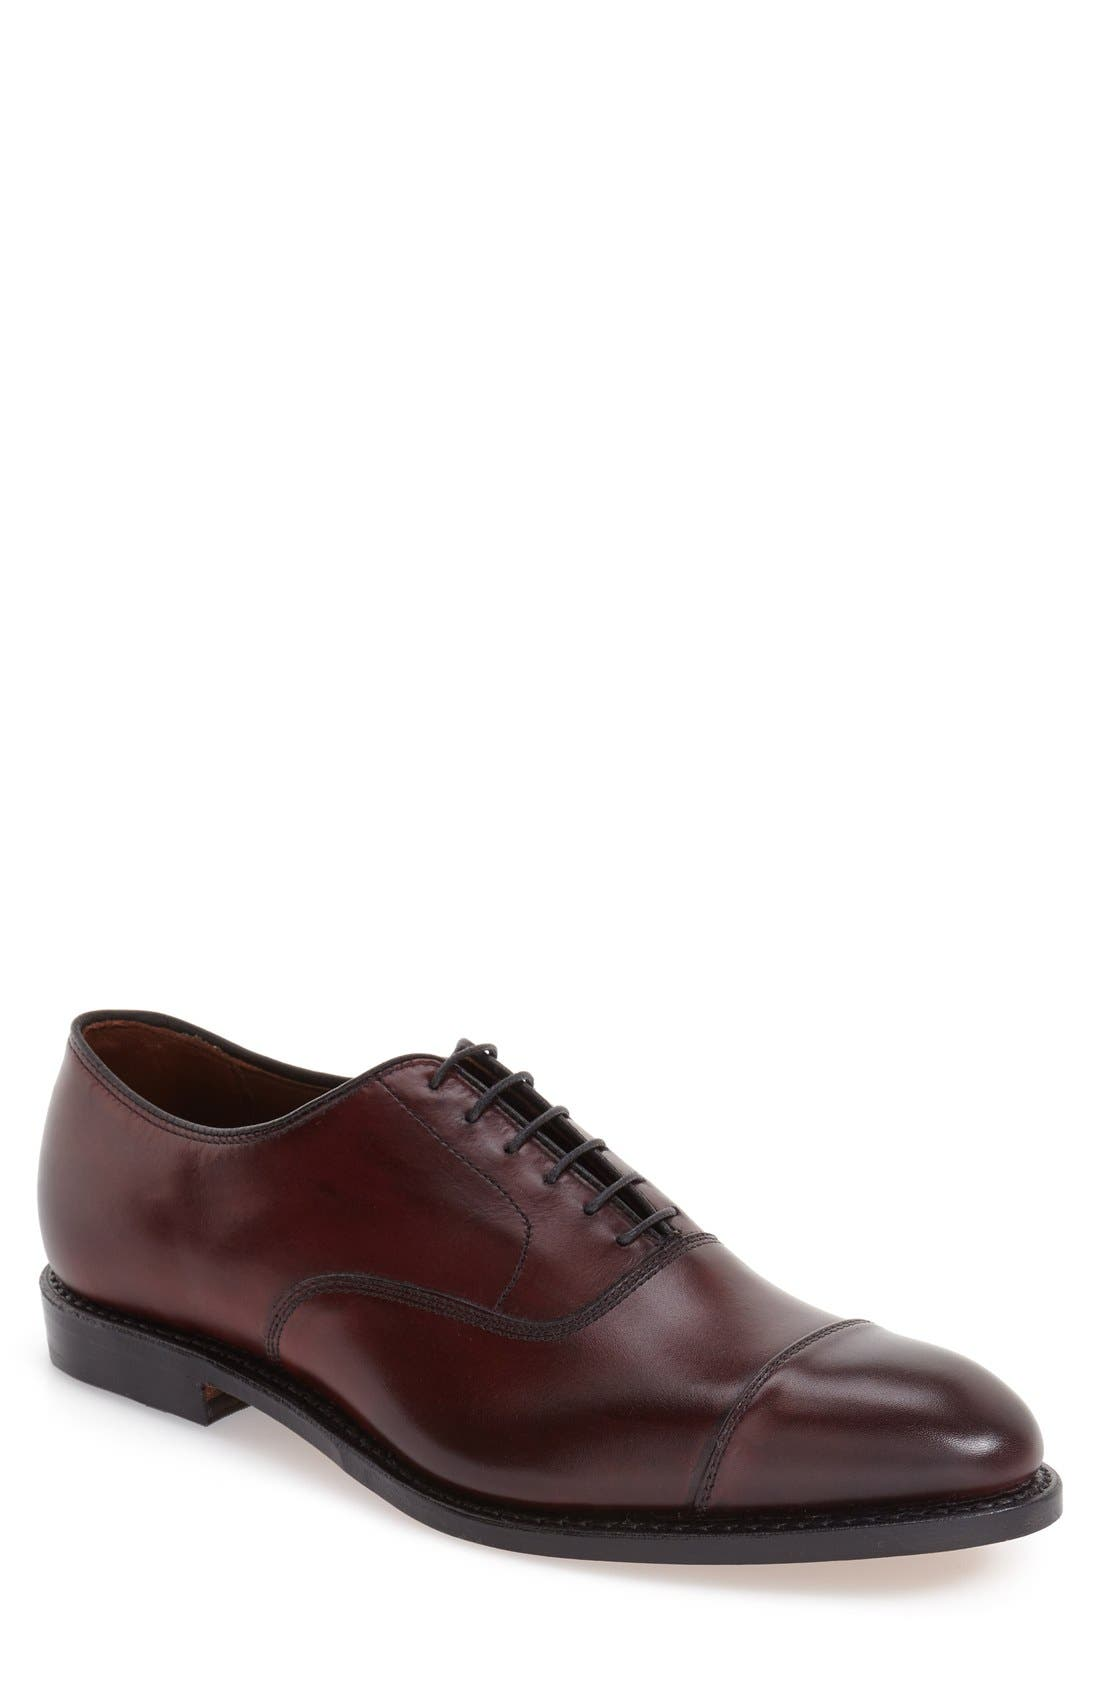 Main Image - Allen Edmonds 'Park Avenue' Cap Toe Oxford (Men)